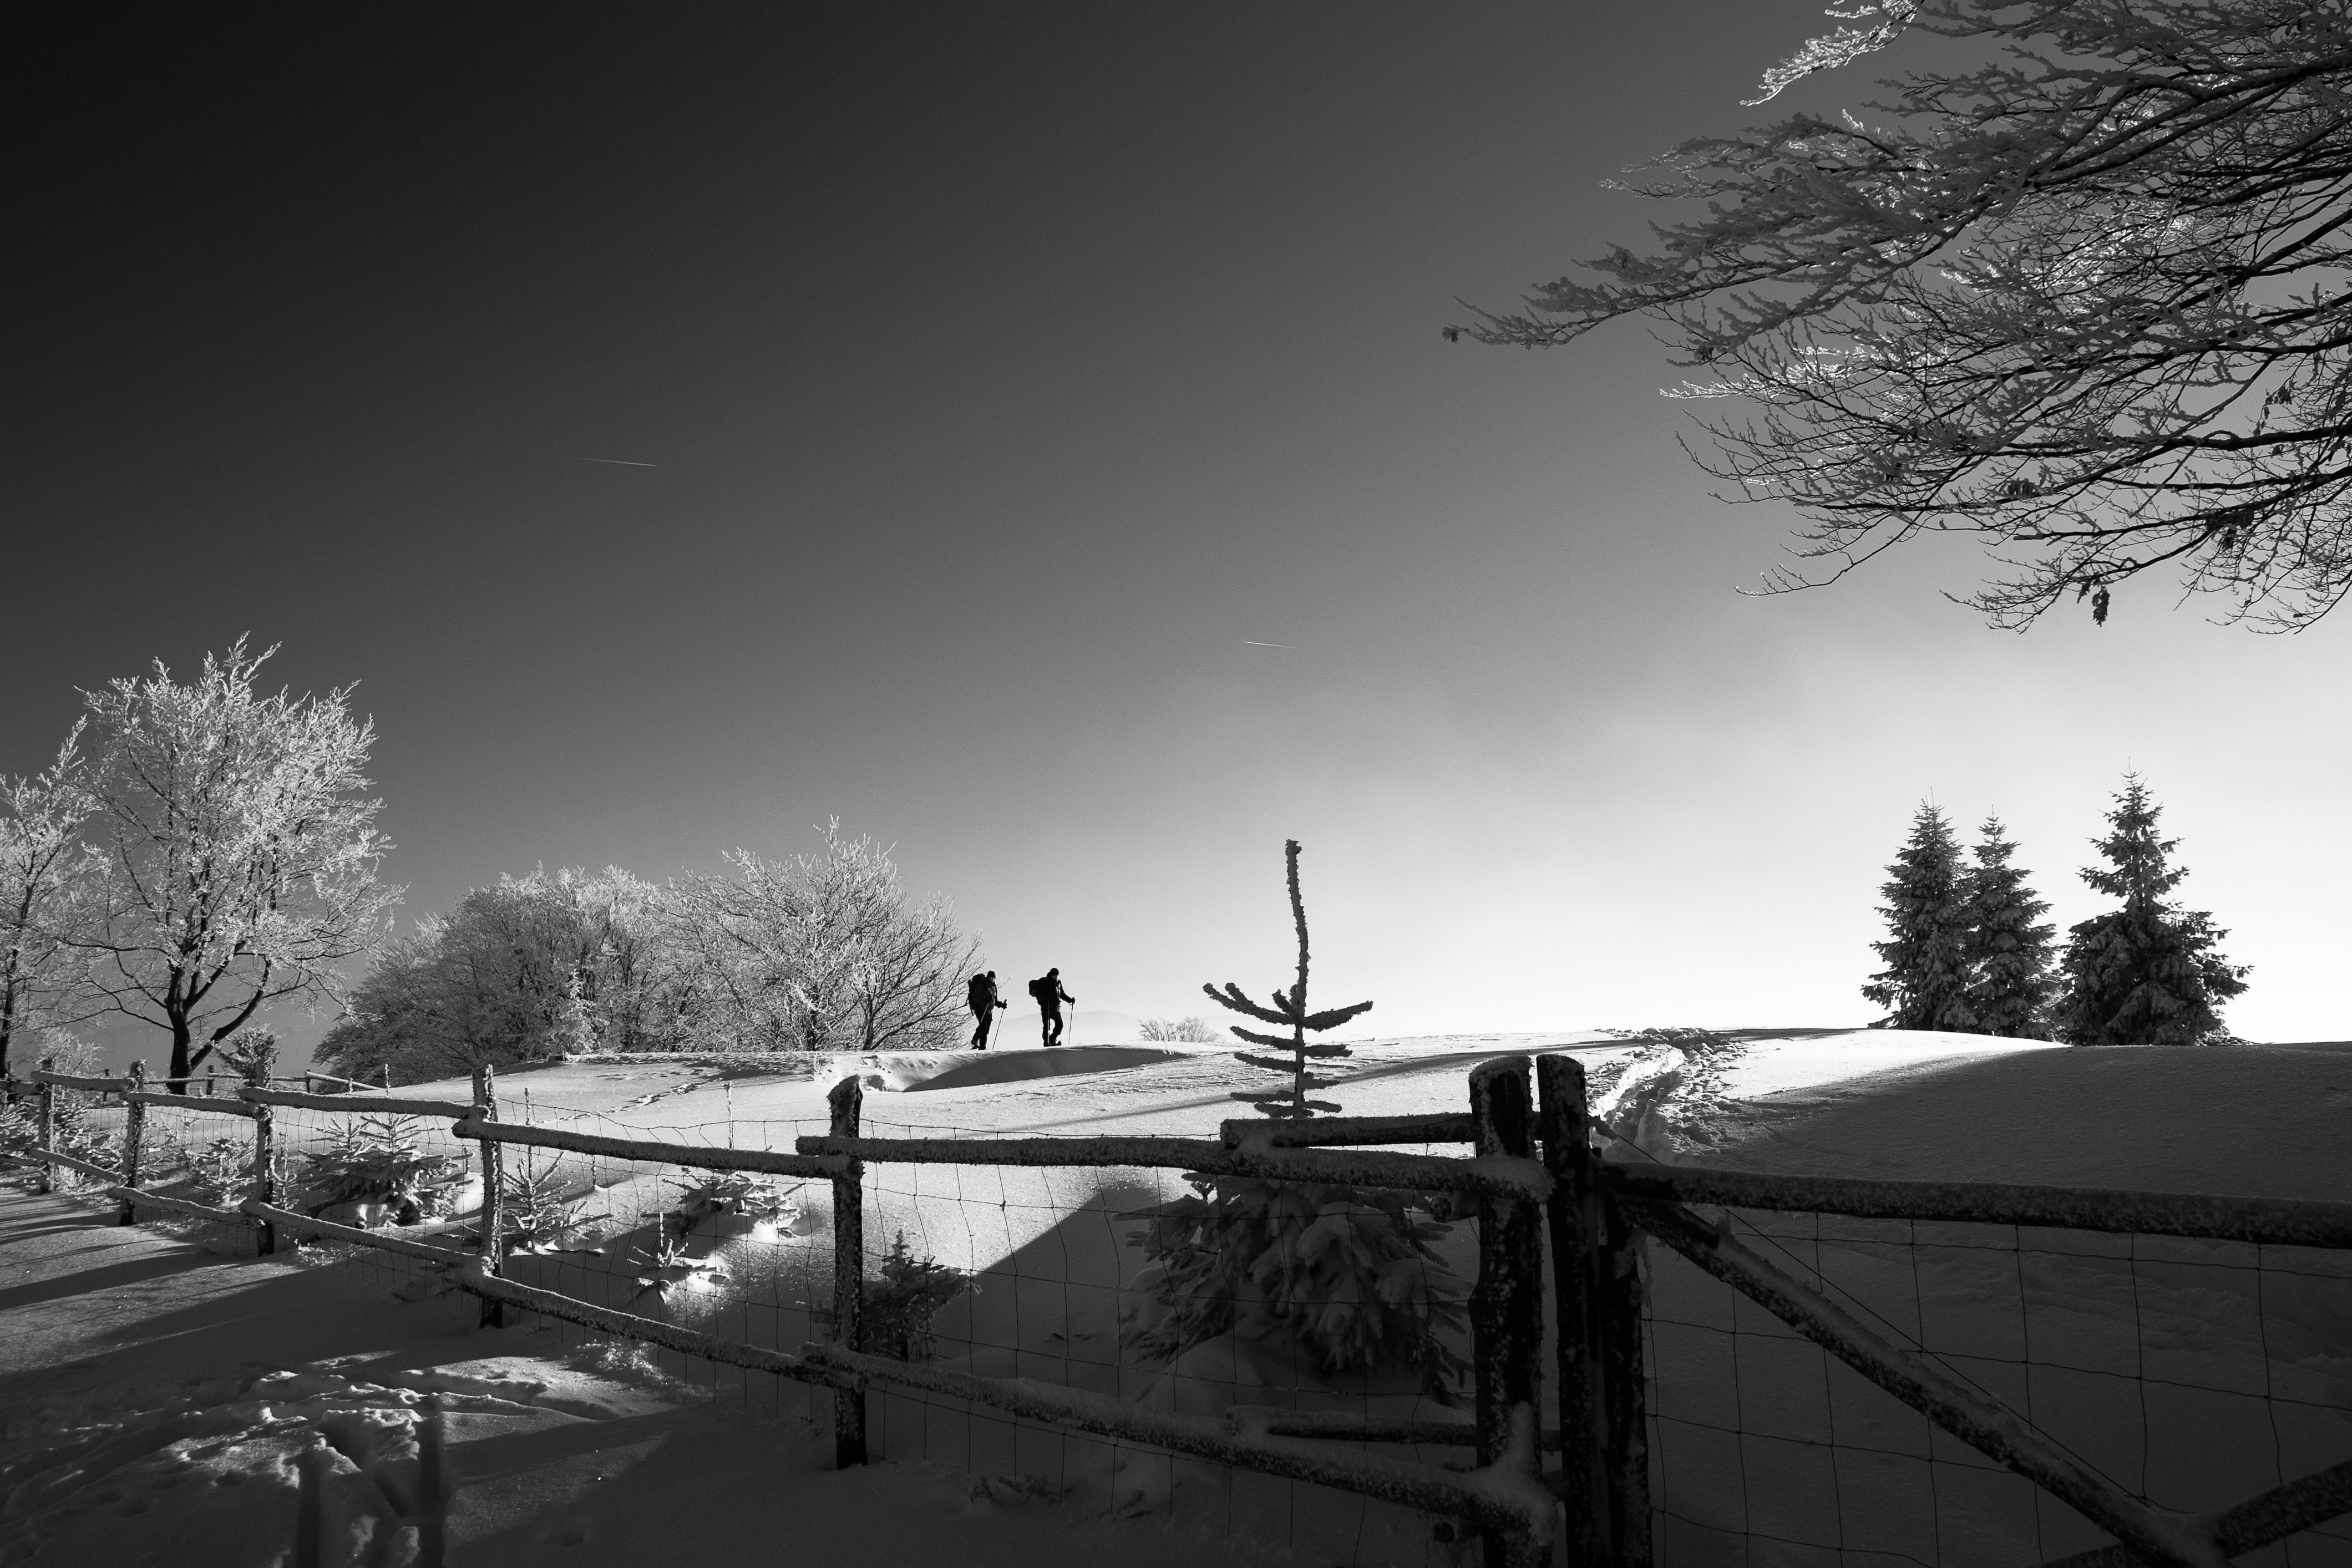 View from the fence of two men hiking on a tree-laden snowy path